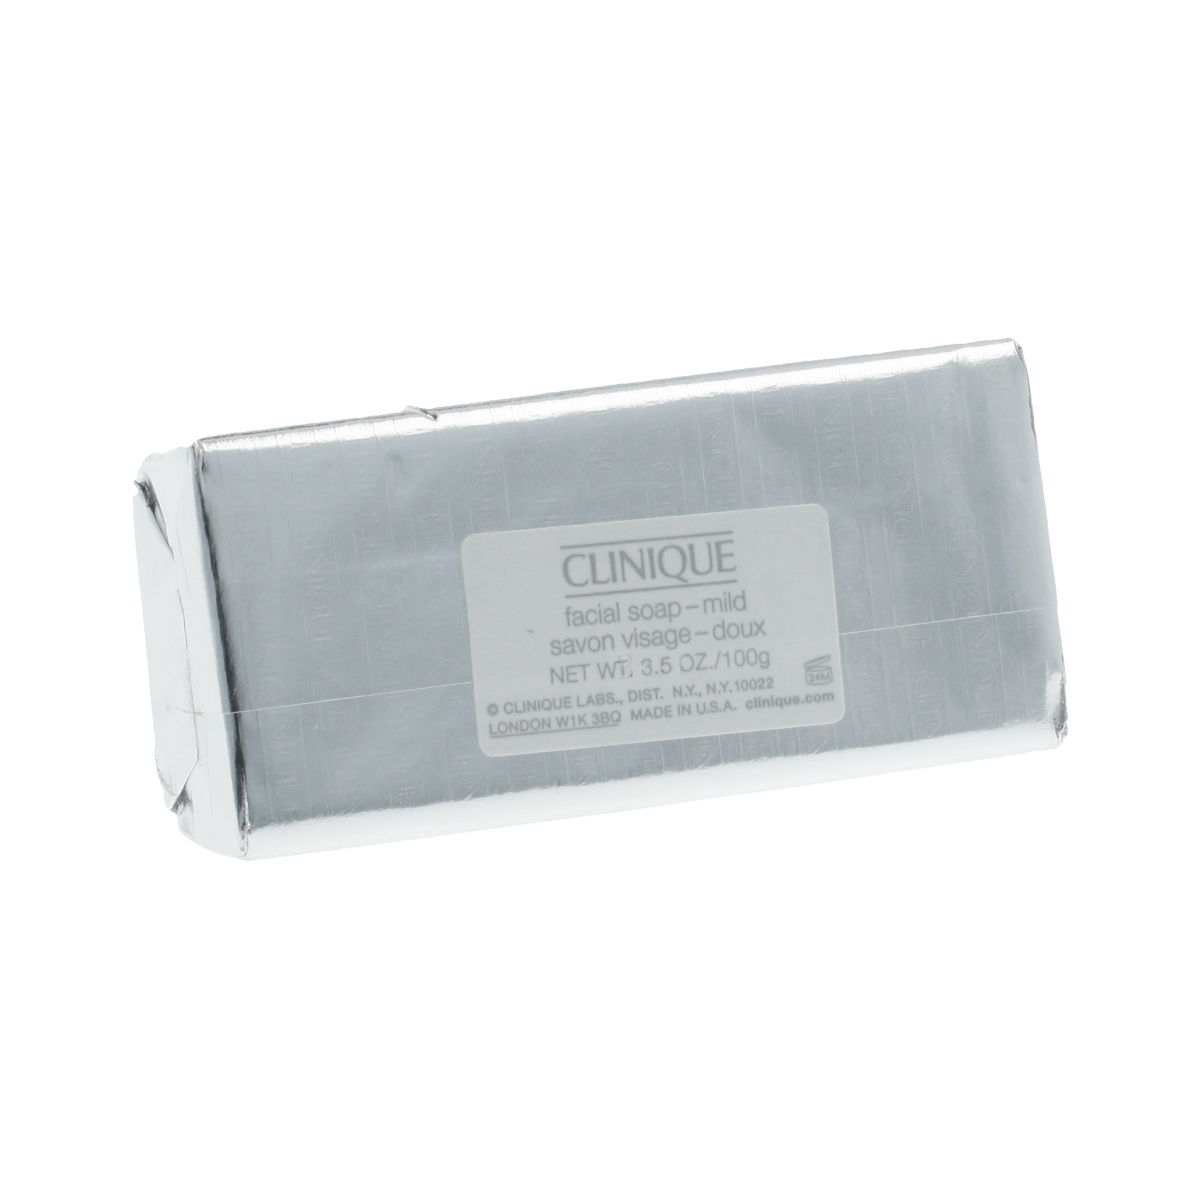 Clinique Facial Soap Mild 100 g